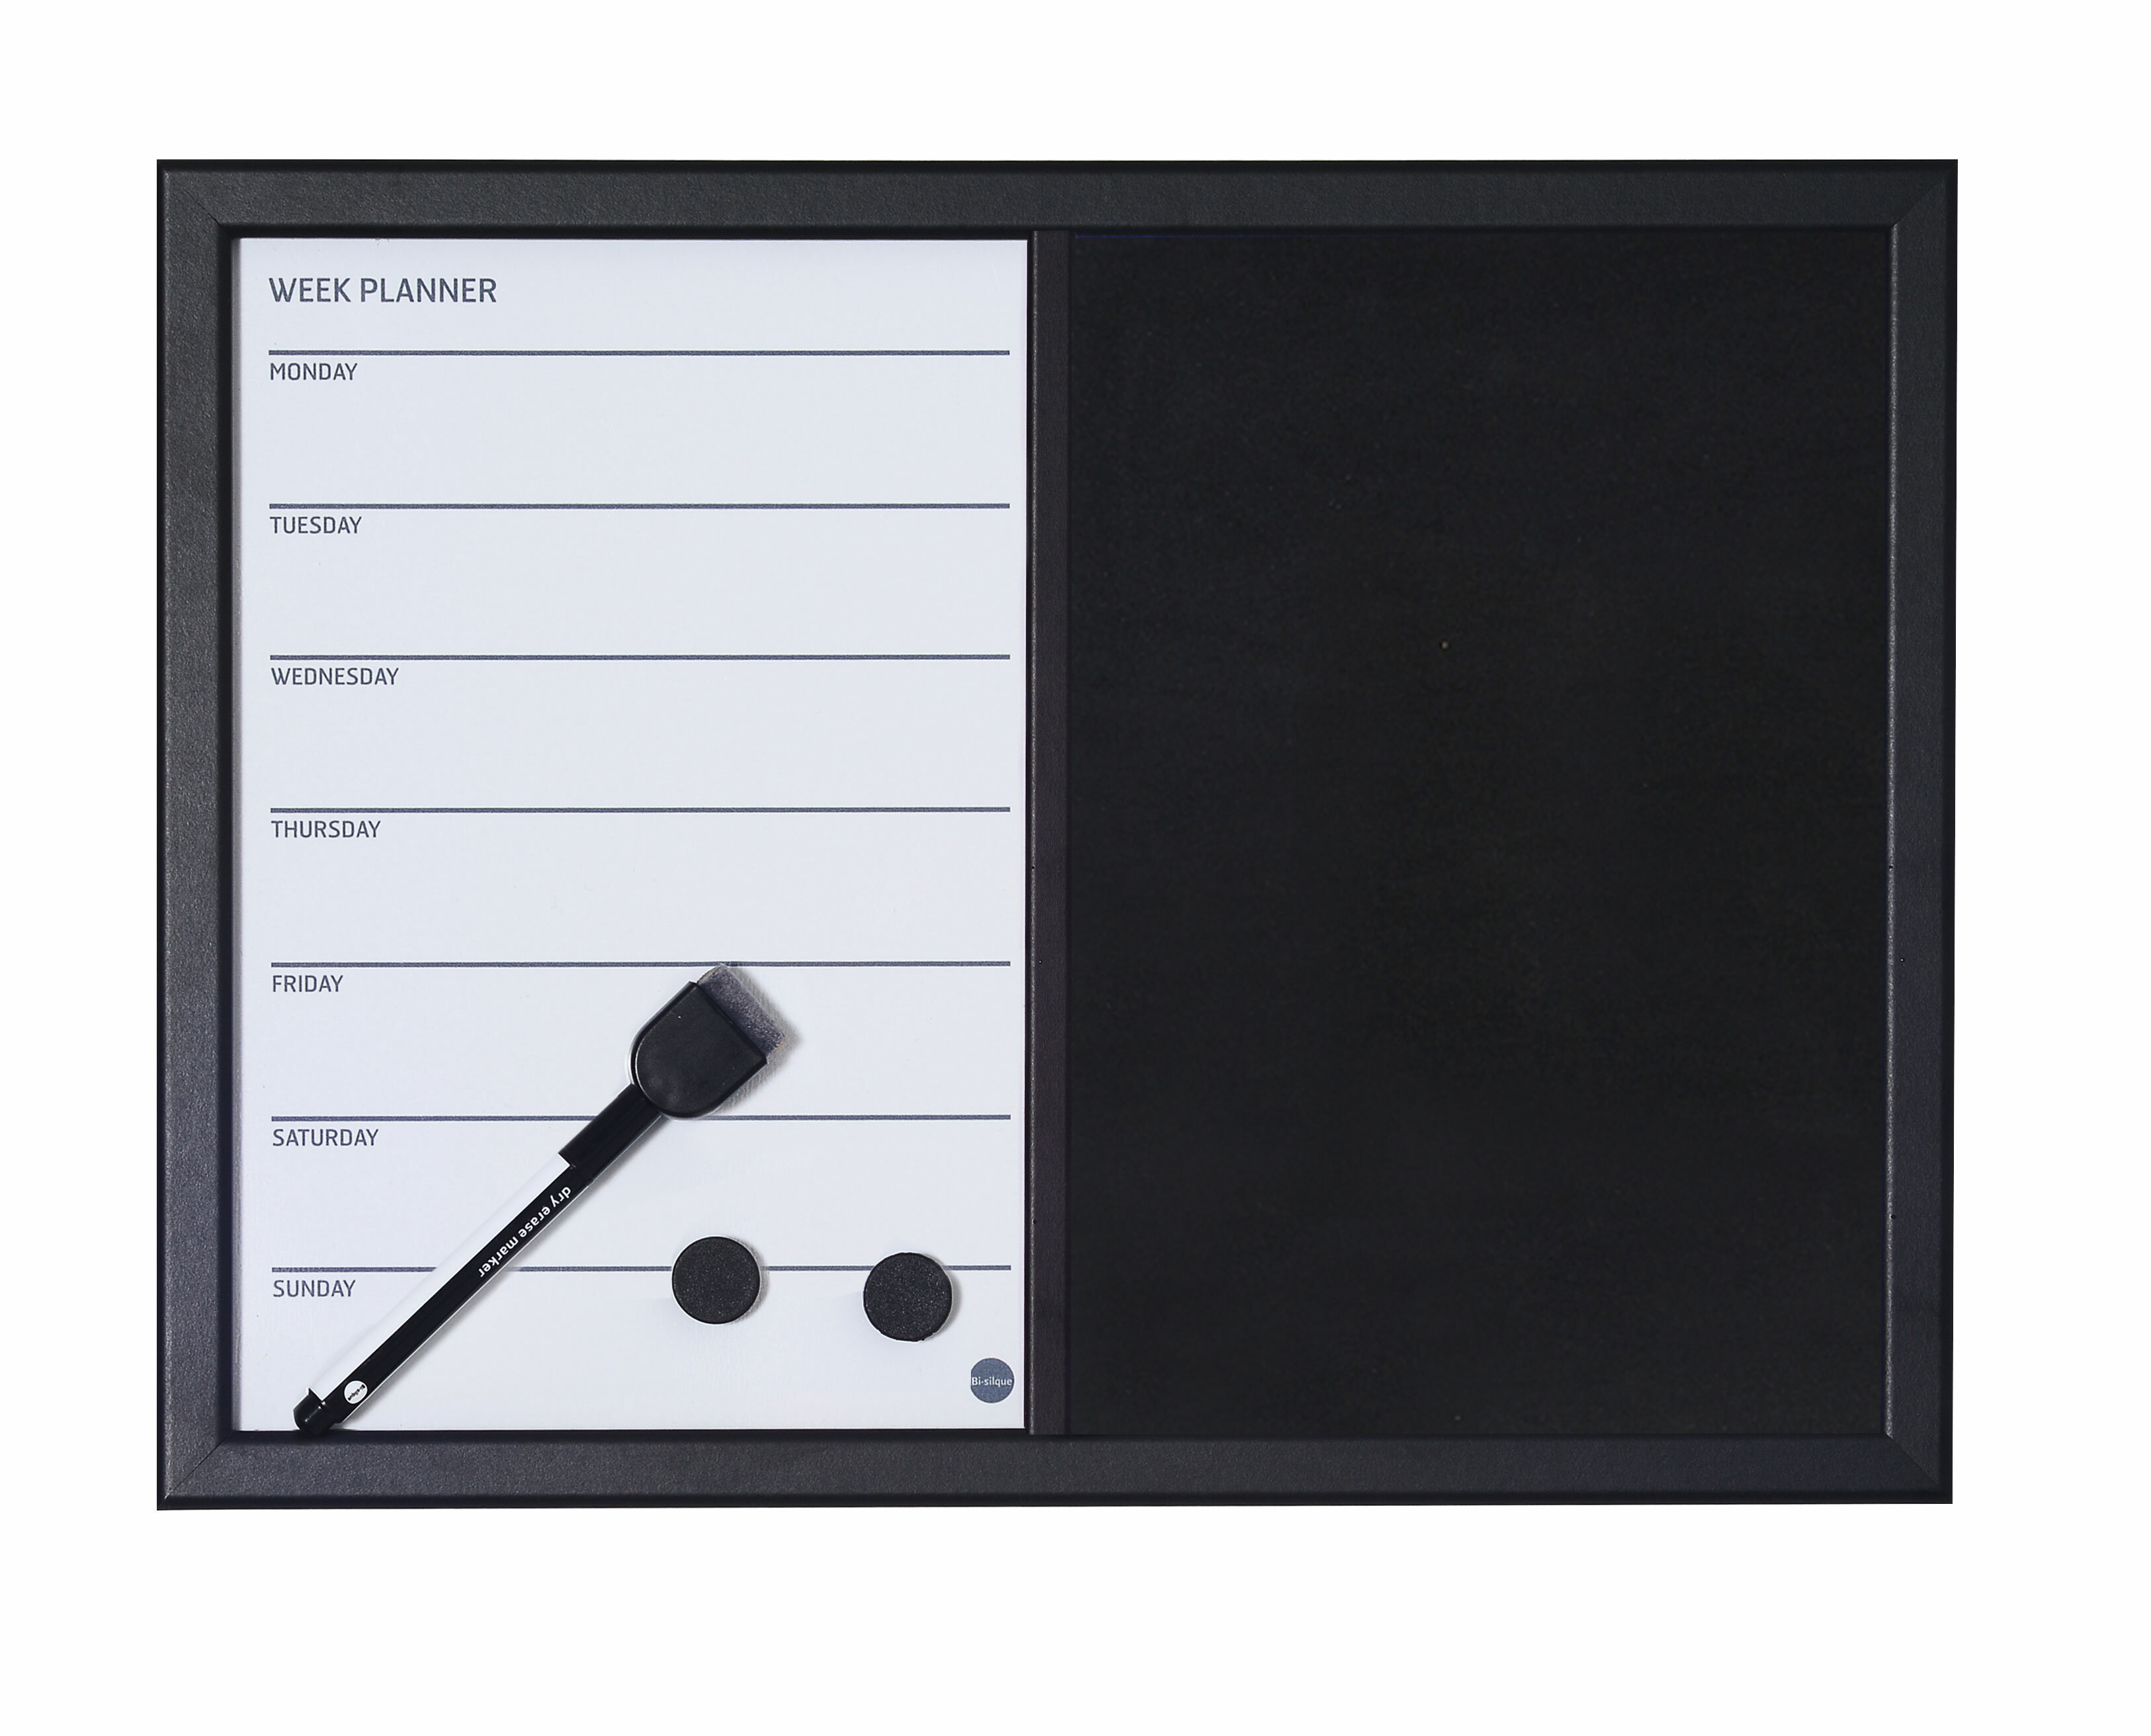 Mastervision Magnetic Wall Mounted Dry Erase Board Wayfair